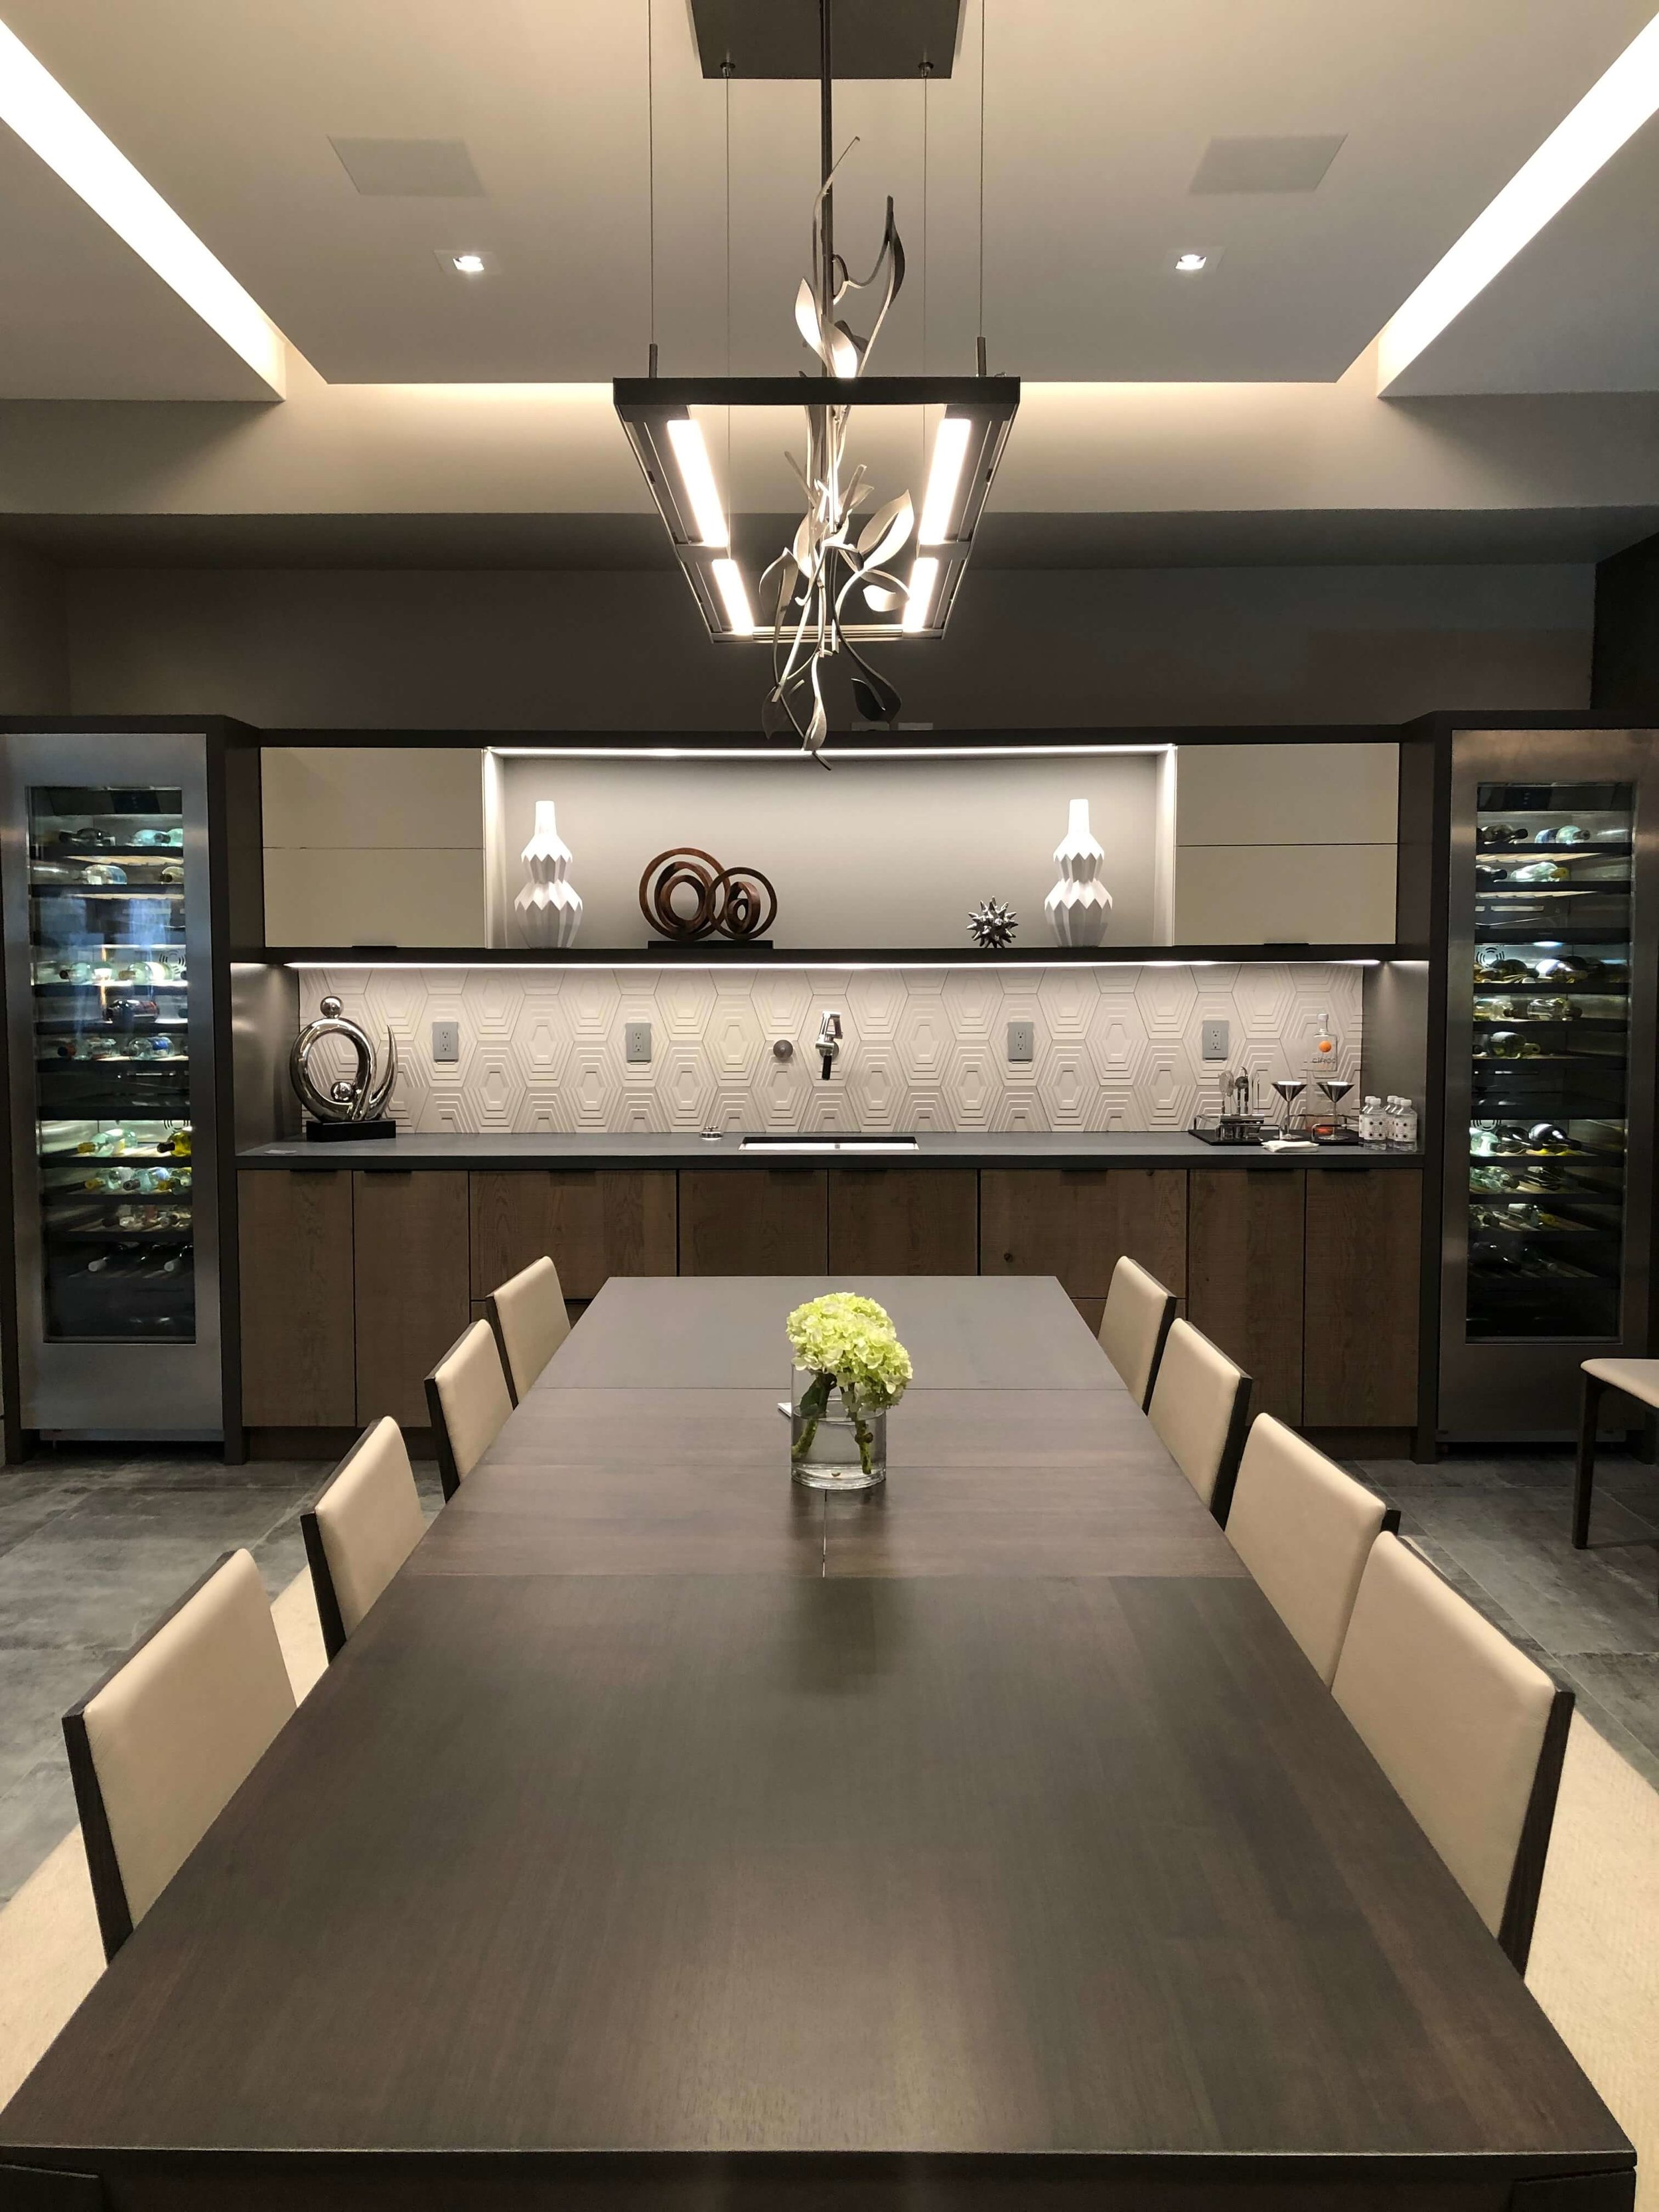 The spacious dining room had built in wine refrigeration, storage and a long dining table in The New American Remodel 2019. #hometour #contemporaryhome #diningroom